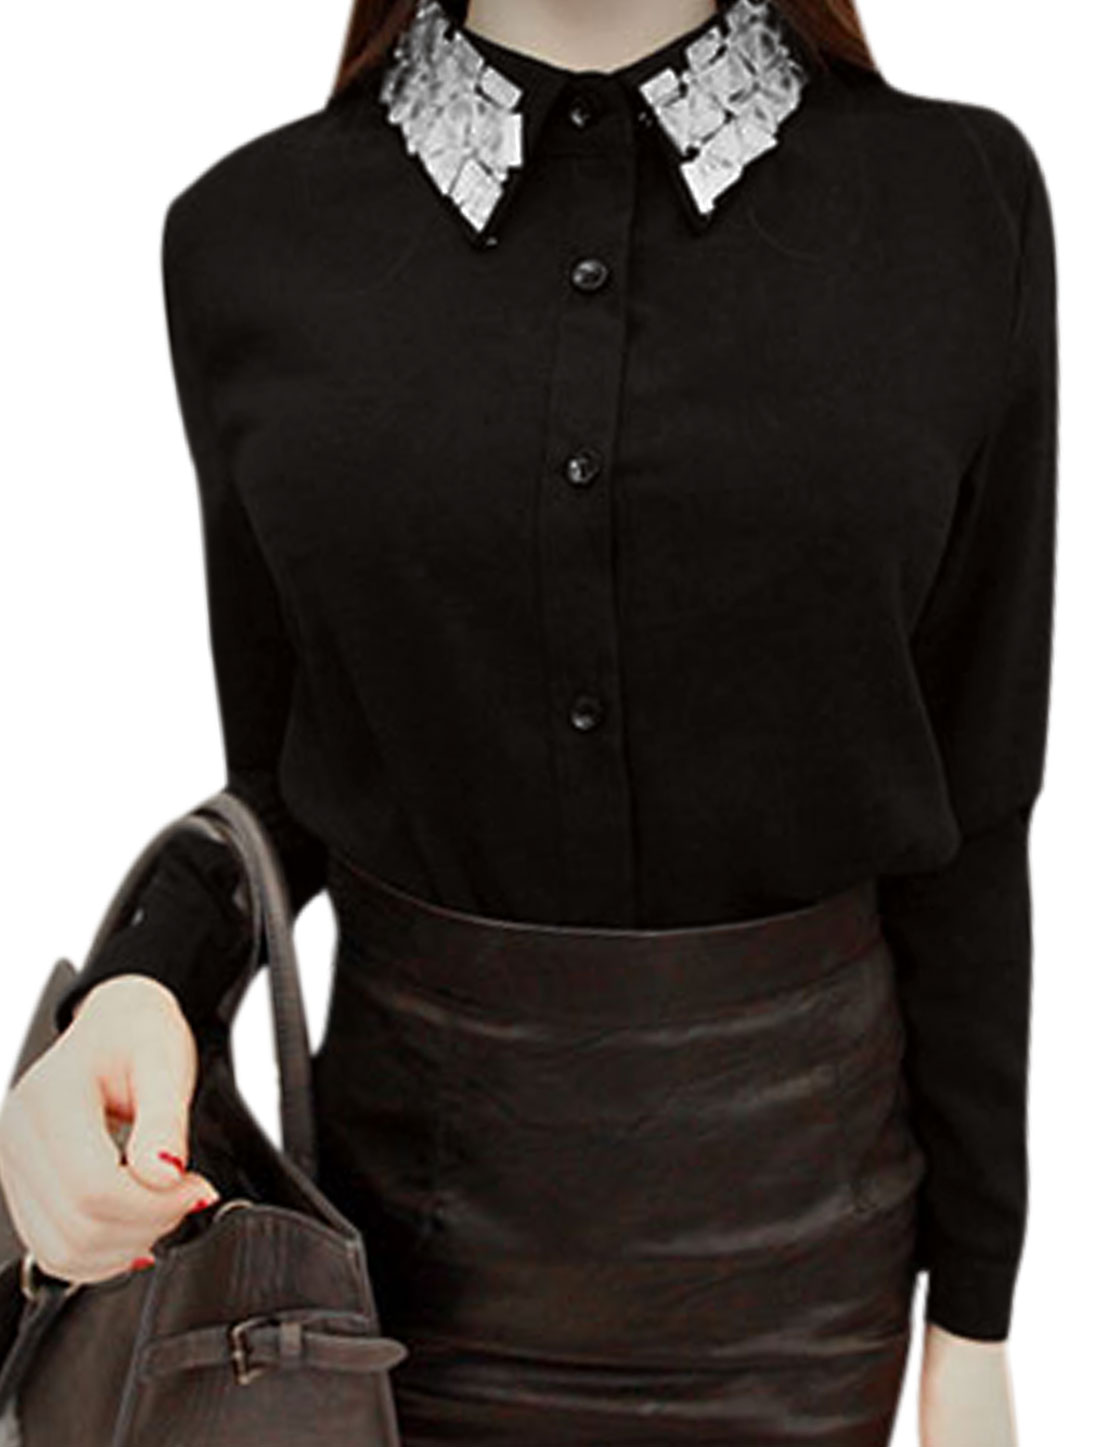 Women Rhinestone Decor Point Collar Button Up Shirt Black XS